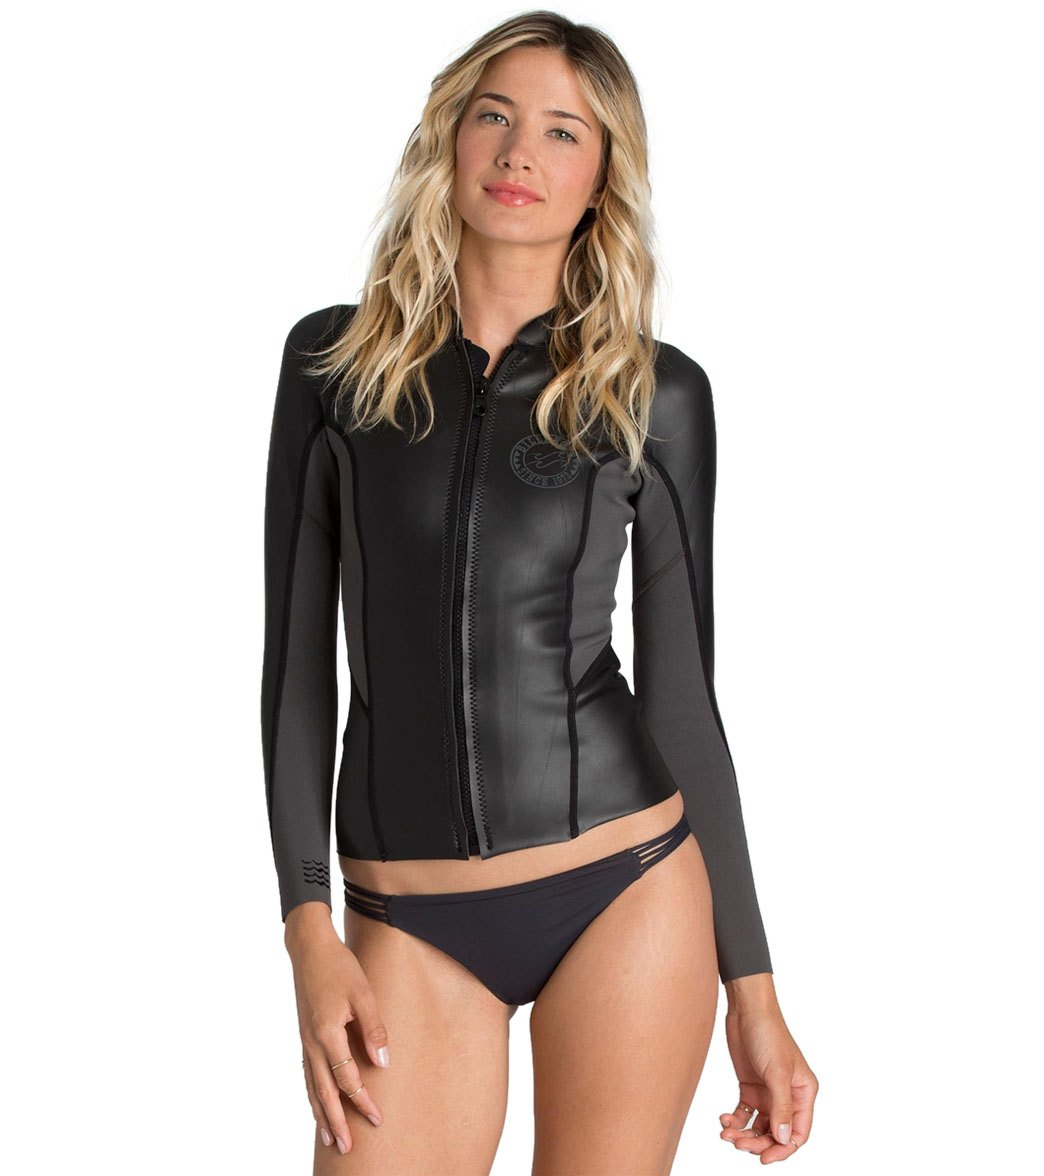 Billabong Women s 1mm Solid Surf Capsule Peeky Front Zip Wetsuit Jacket at  SwimOutlet.com - Free Shipping 090c59d7a